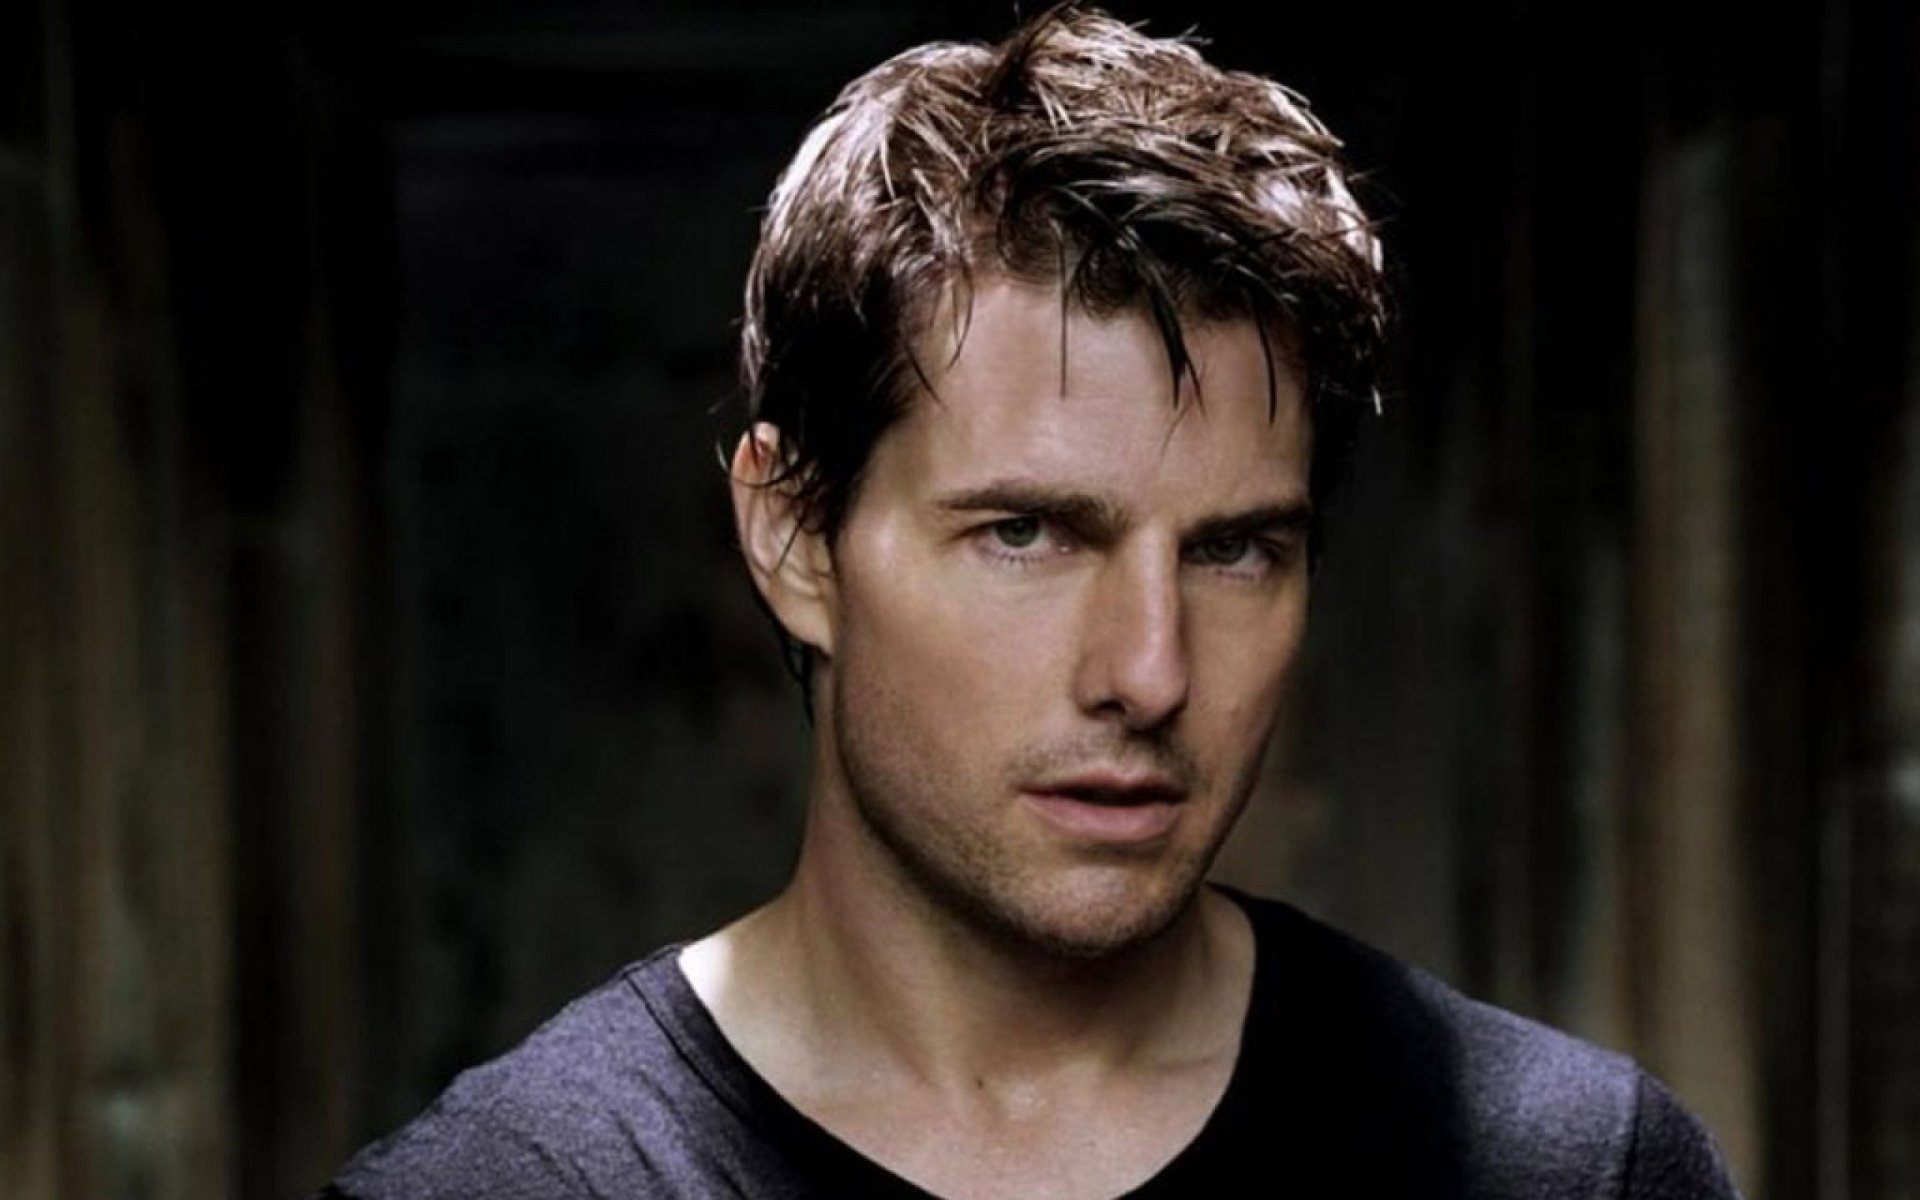 172 Tom Cruise Hd Wallpapers Background Images Wallpaper Abyss